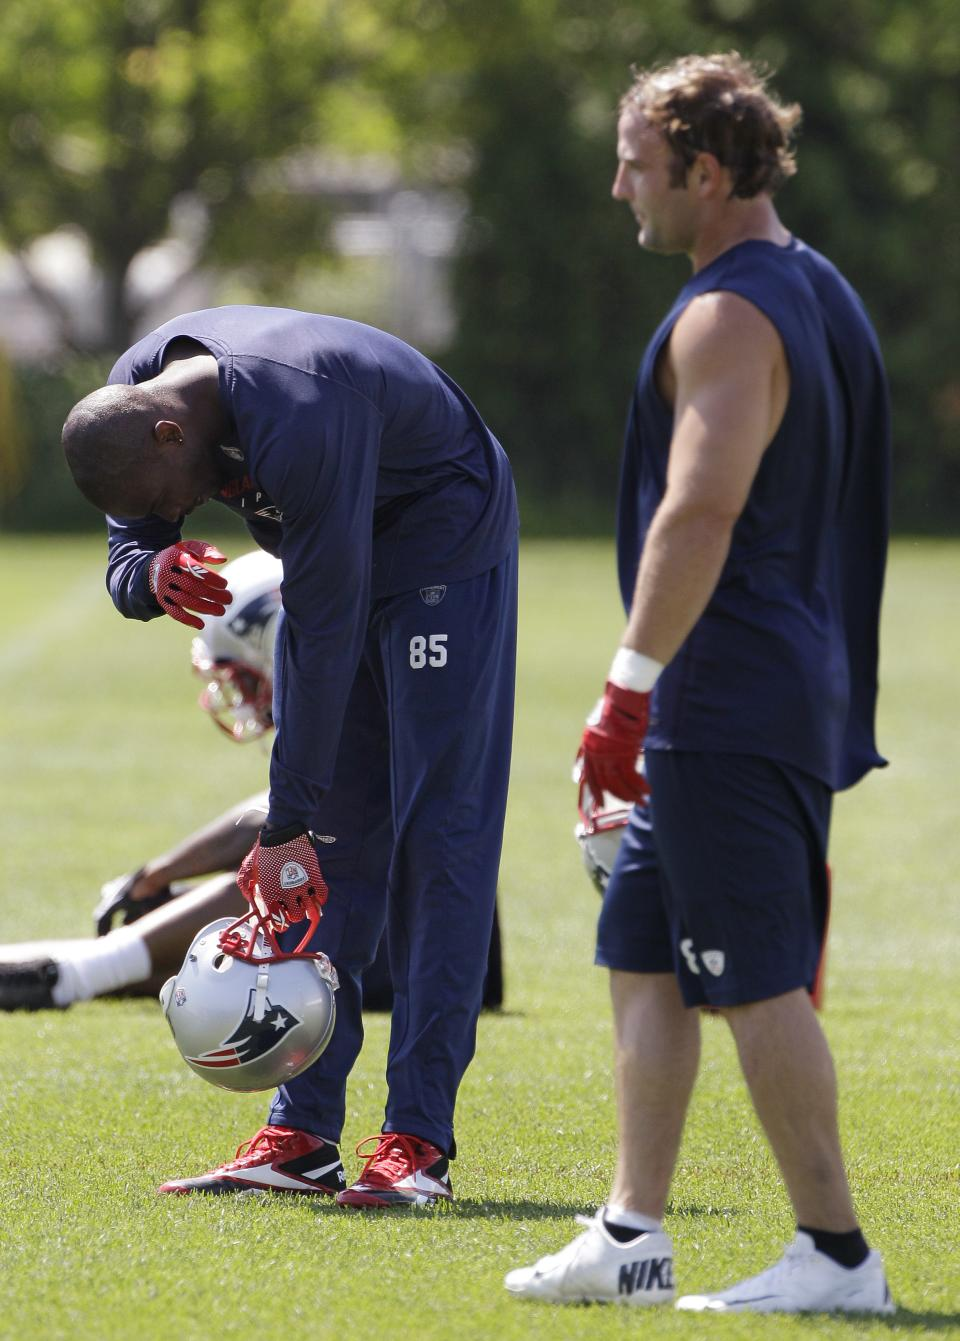 New England Patriots wide receiver Chad Ochocinco, left, wipes his brow as wide receiver Wes Welker walks by during NFL football practice at the team's training facility in Foxborough, Mass., Thursday, May 31, 2012. (AP Photo/Stephan Savoia)